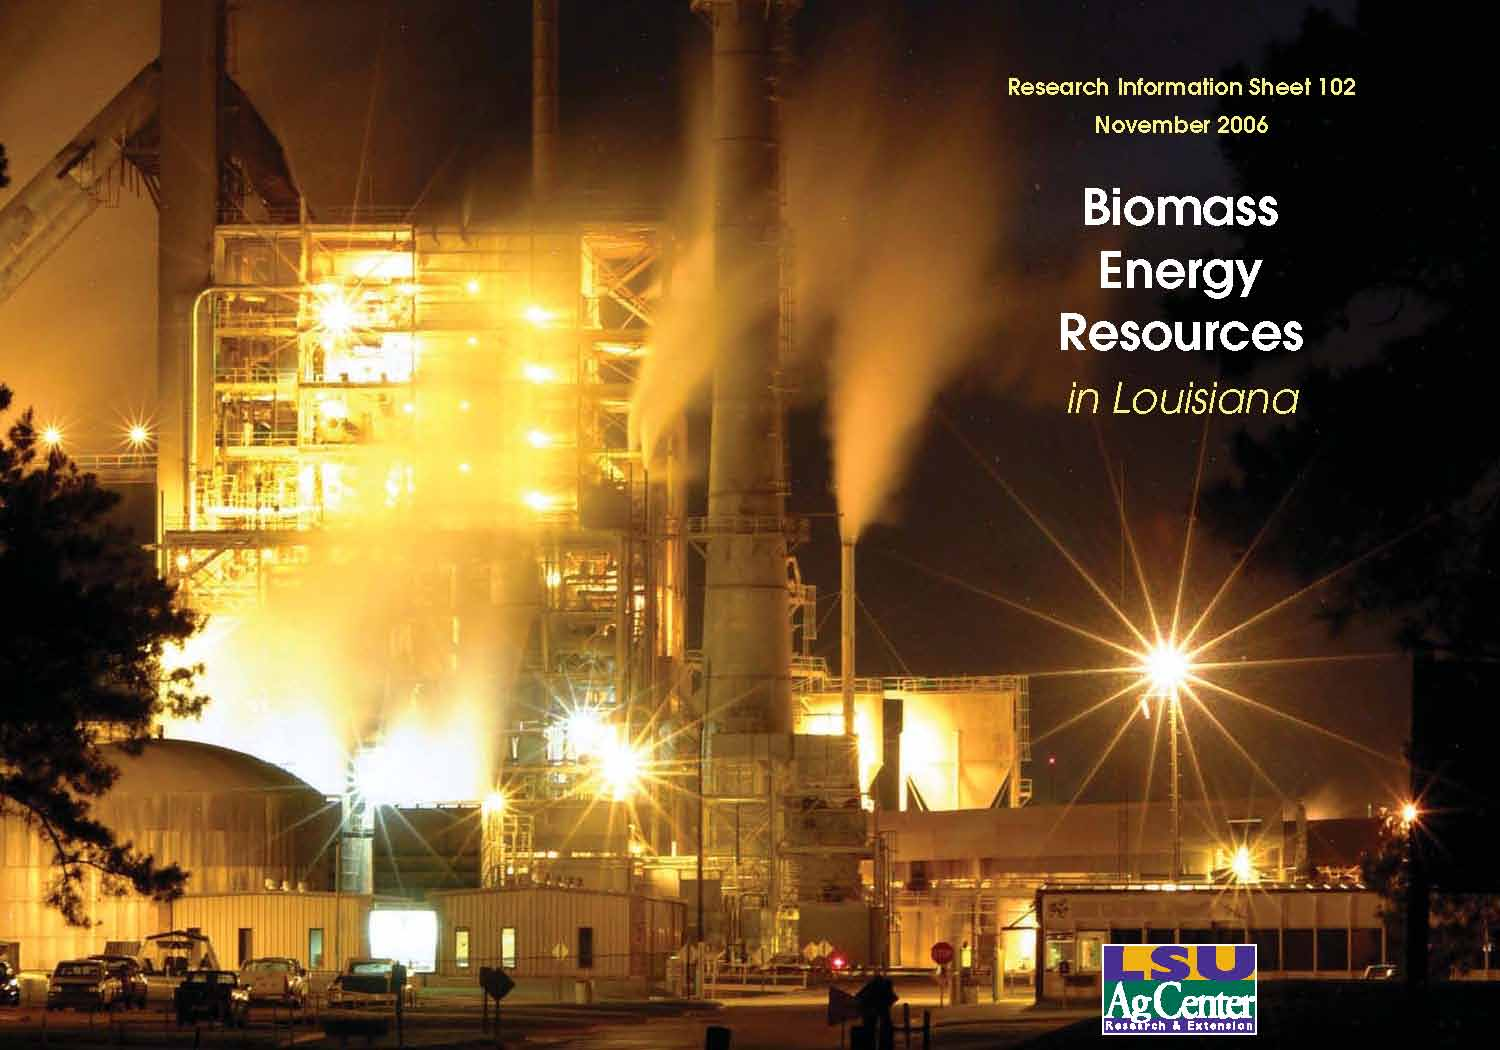 Biomass Energy Resources in Louisiana